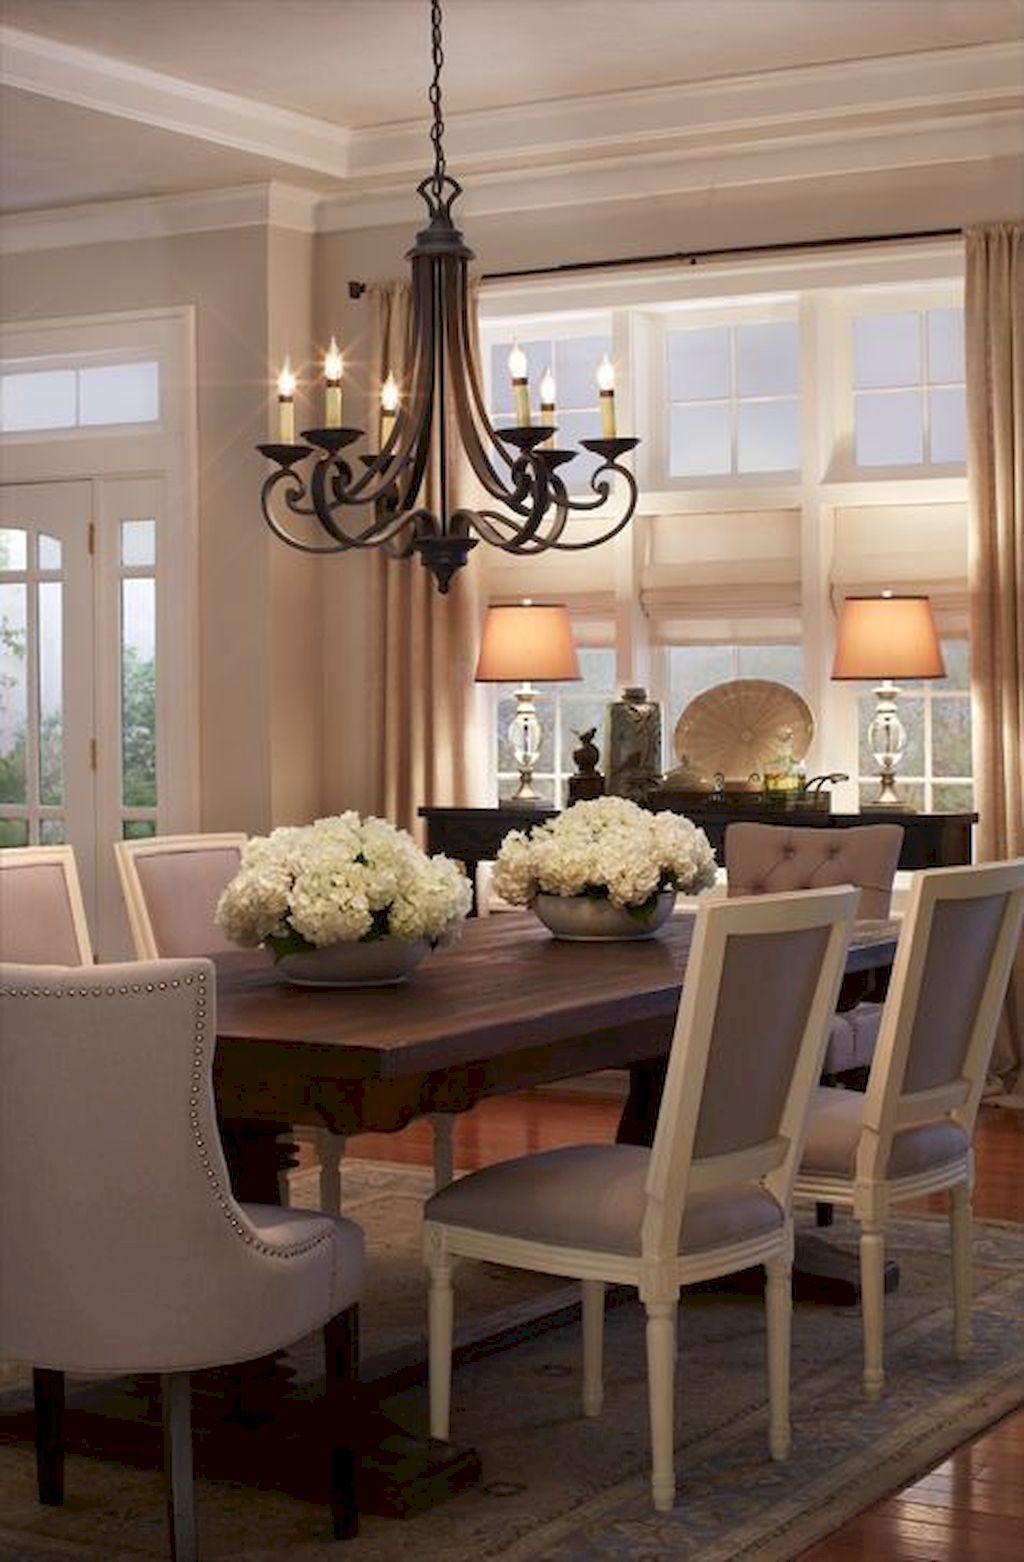 Nice 85 Beautiful French Country Dining Room Decor Ideas Homespecially